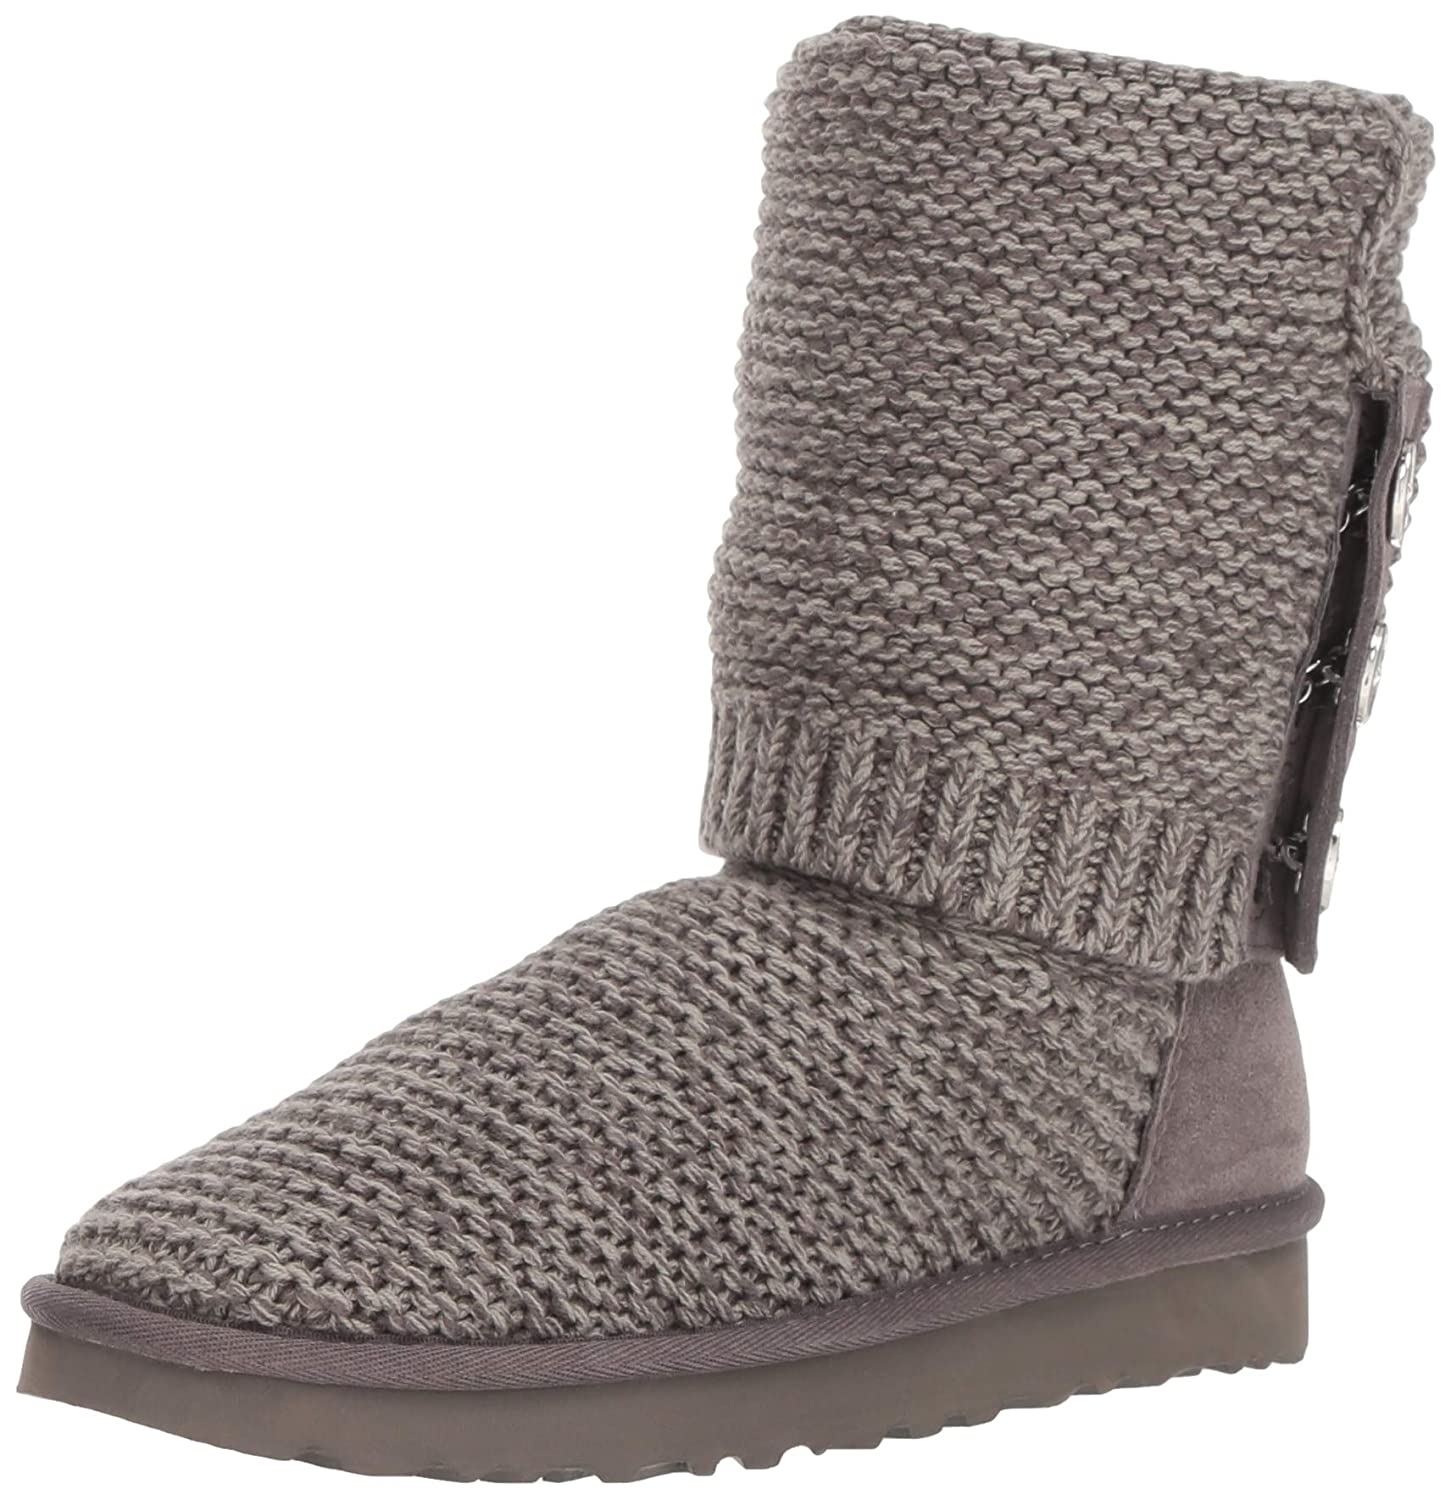 451c5a2dcb1 UGG Women's W PURL Cardy Knit Fashion Boot